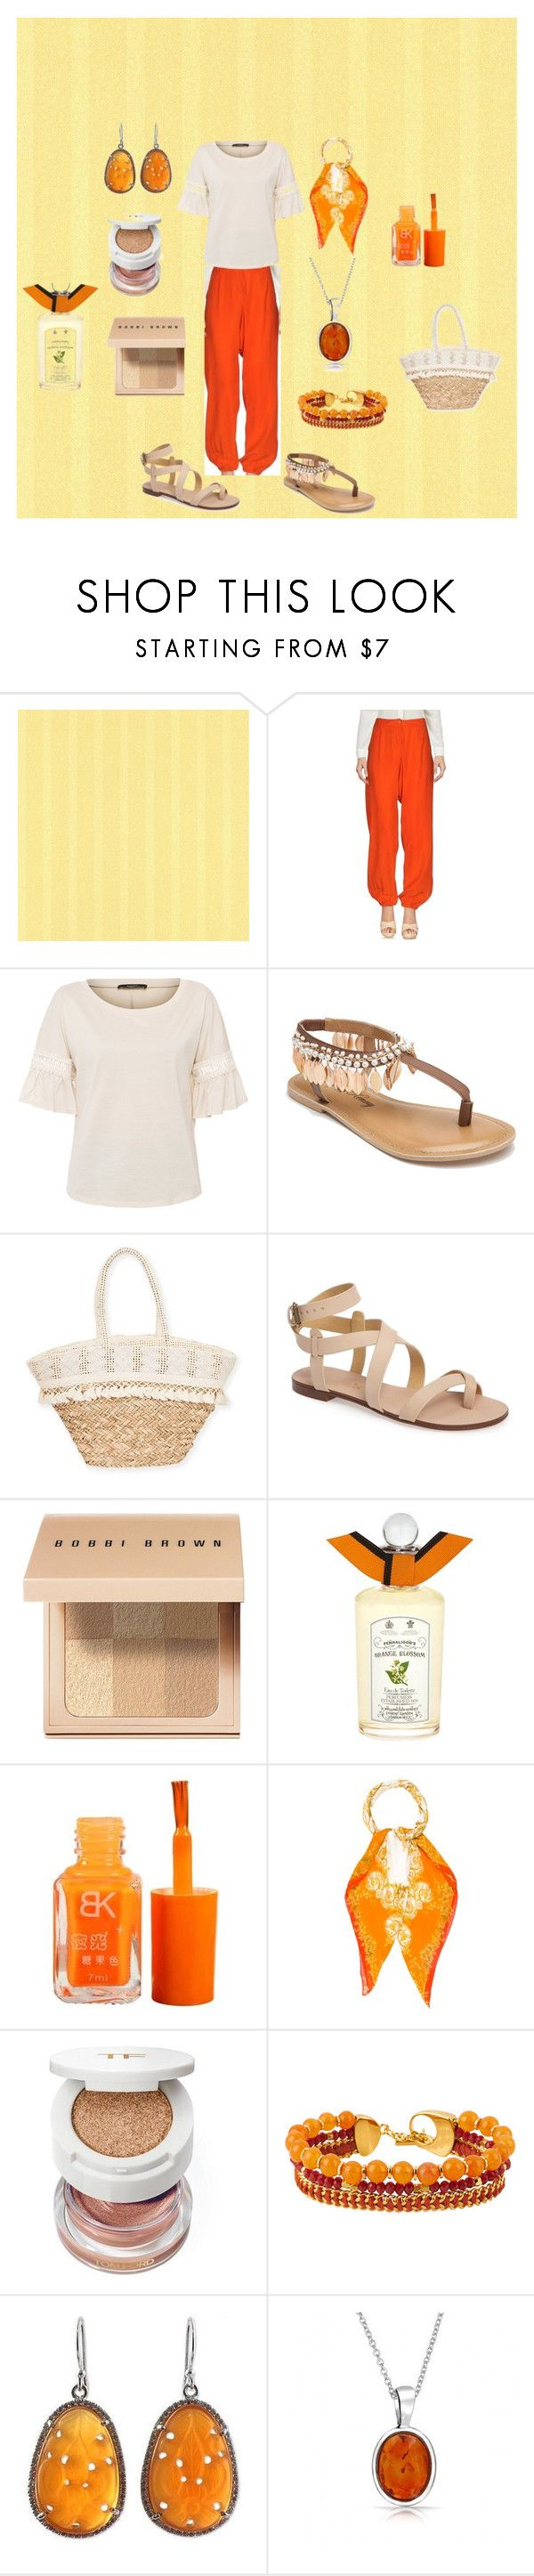 """#5 Orange White"" by cristina-cannizzo on Polyvore featuring P.A.R.O.S.H., Weekend Max Mara, Penny Loves Kenny, Sun N' Sand, Splendid, Bobbi Brown Cosmetics, PENHALIGON'S, Versace, Henri Bendel and NOVICA"